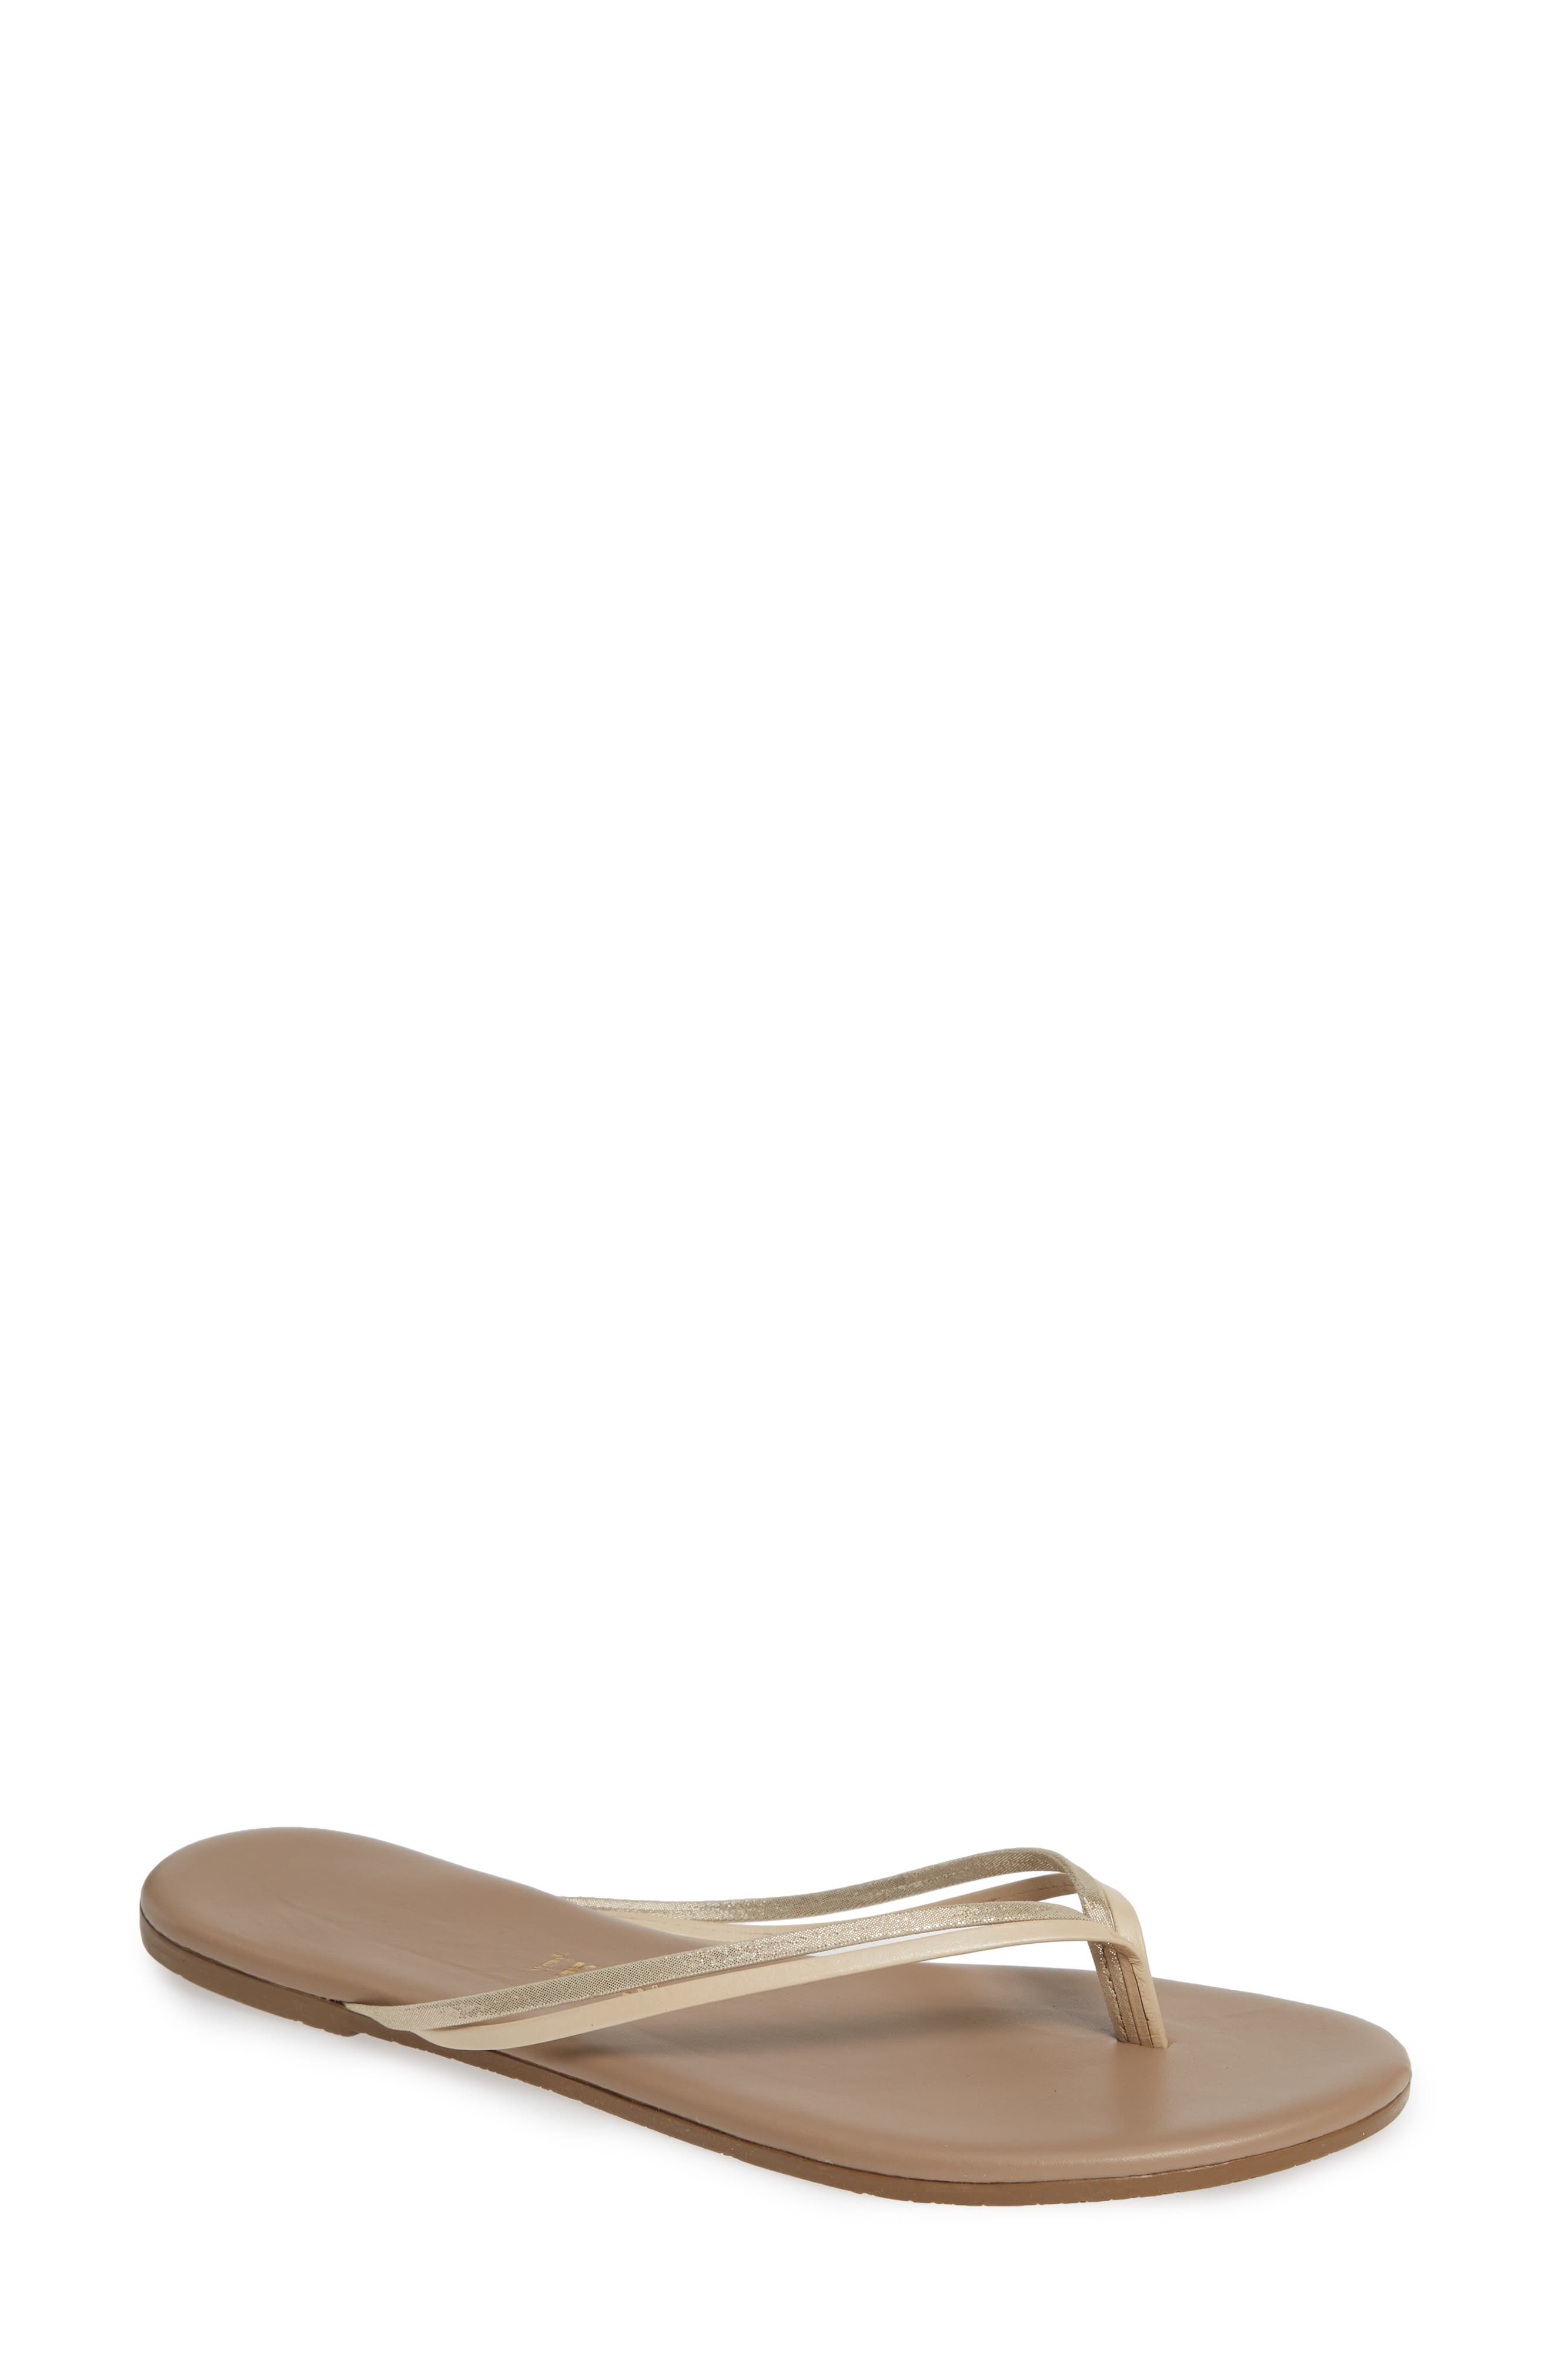 TKEES 'Duos' Flip Flop, Main, color, 040